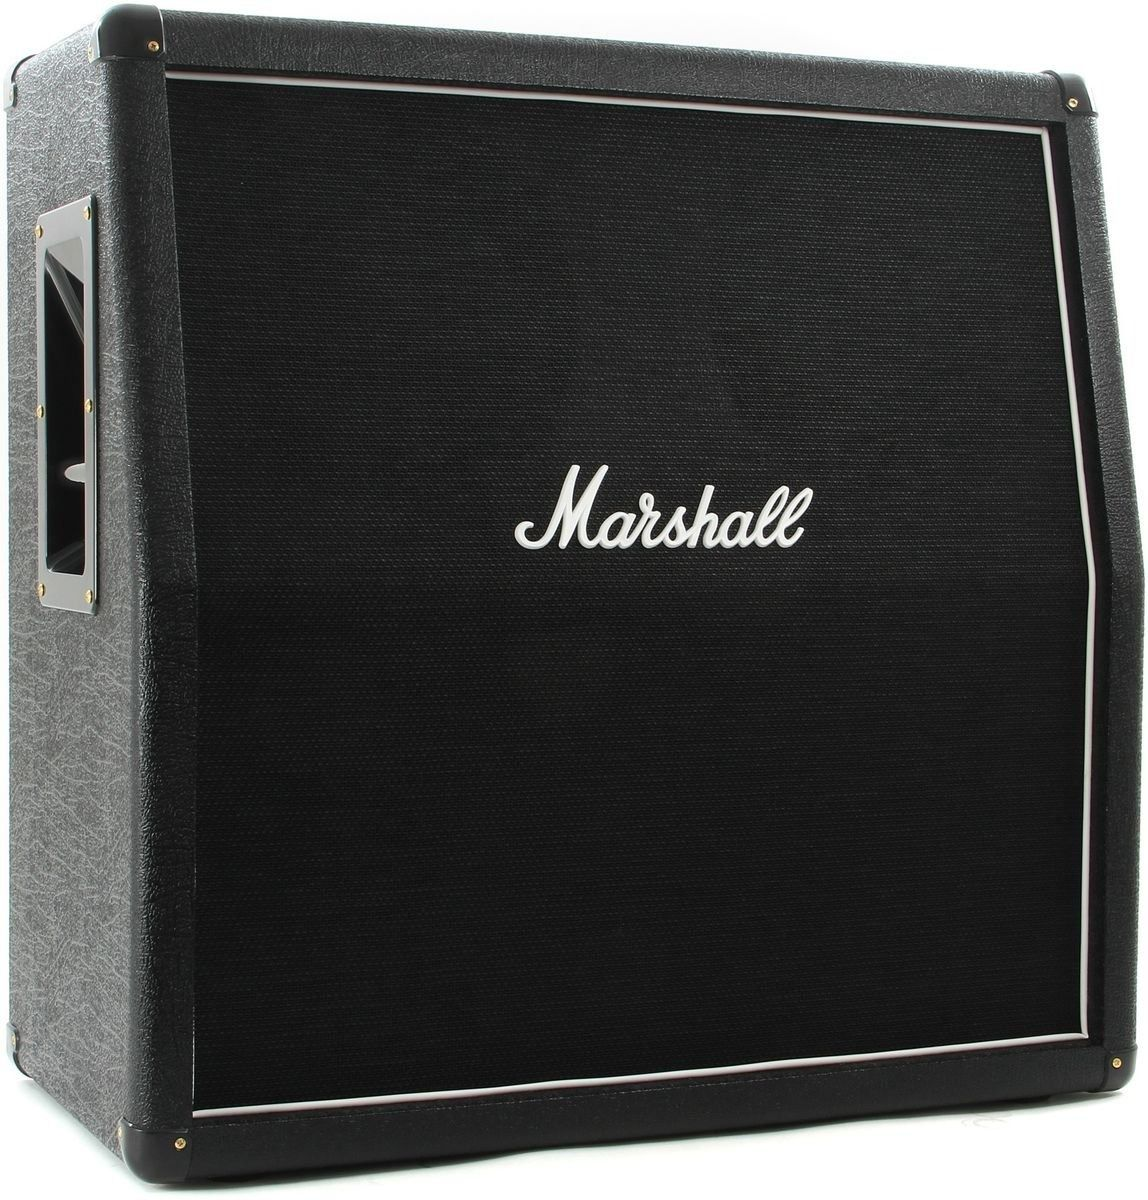 Caixa Marshall P/ Guitarra mx412a